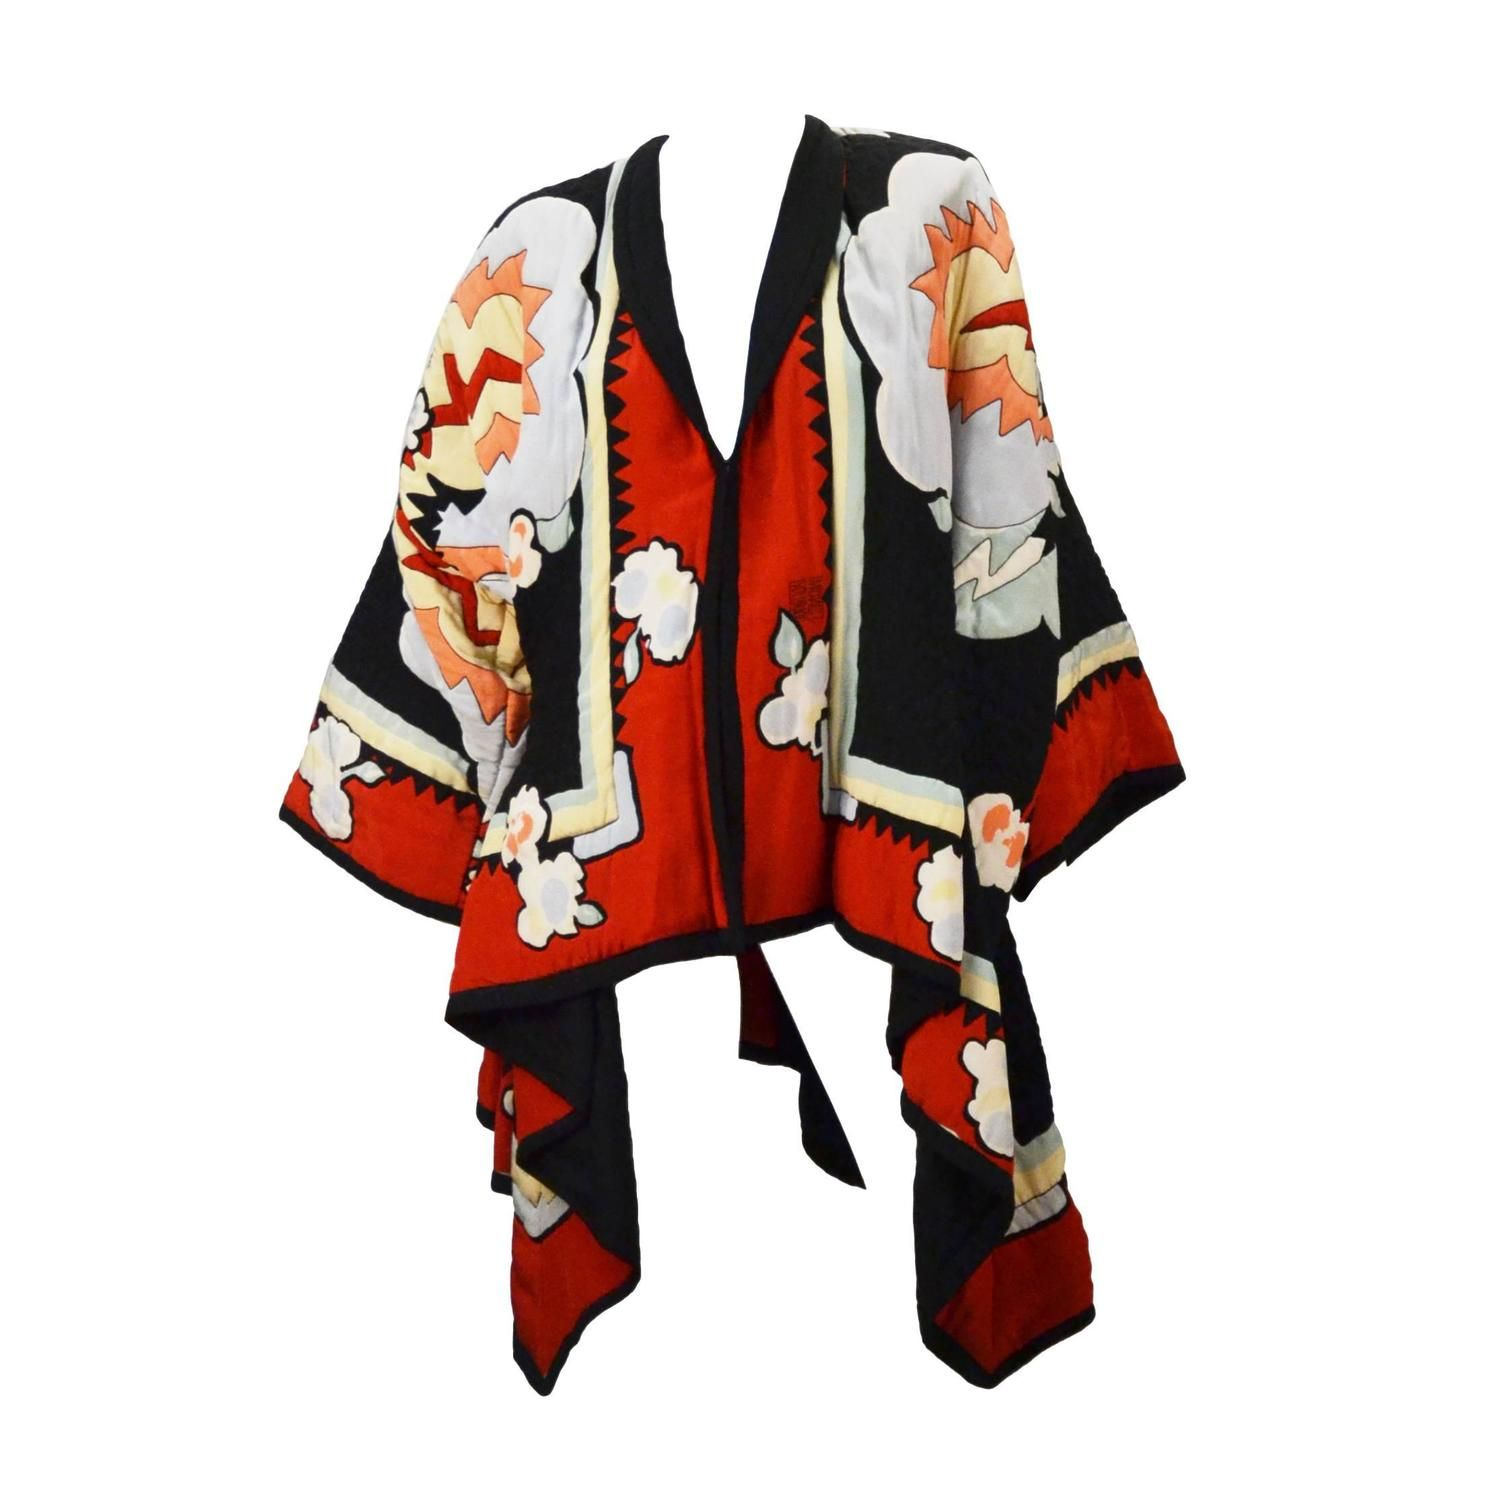 Iconic 1980's Michaele Vollbracht Quilted Silk Kimono/Jacket  | From a collection of rare vintage coats and outerwear at https://www.1stdibs.com/fashion/clothing/coats-outerwear/